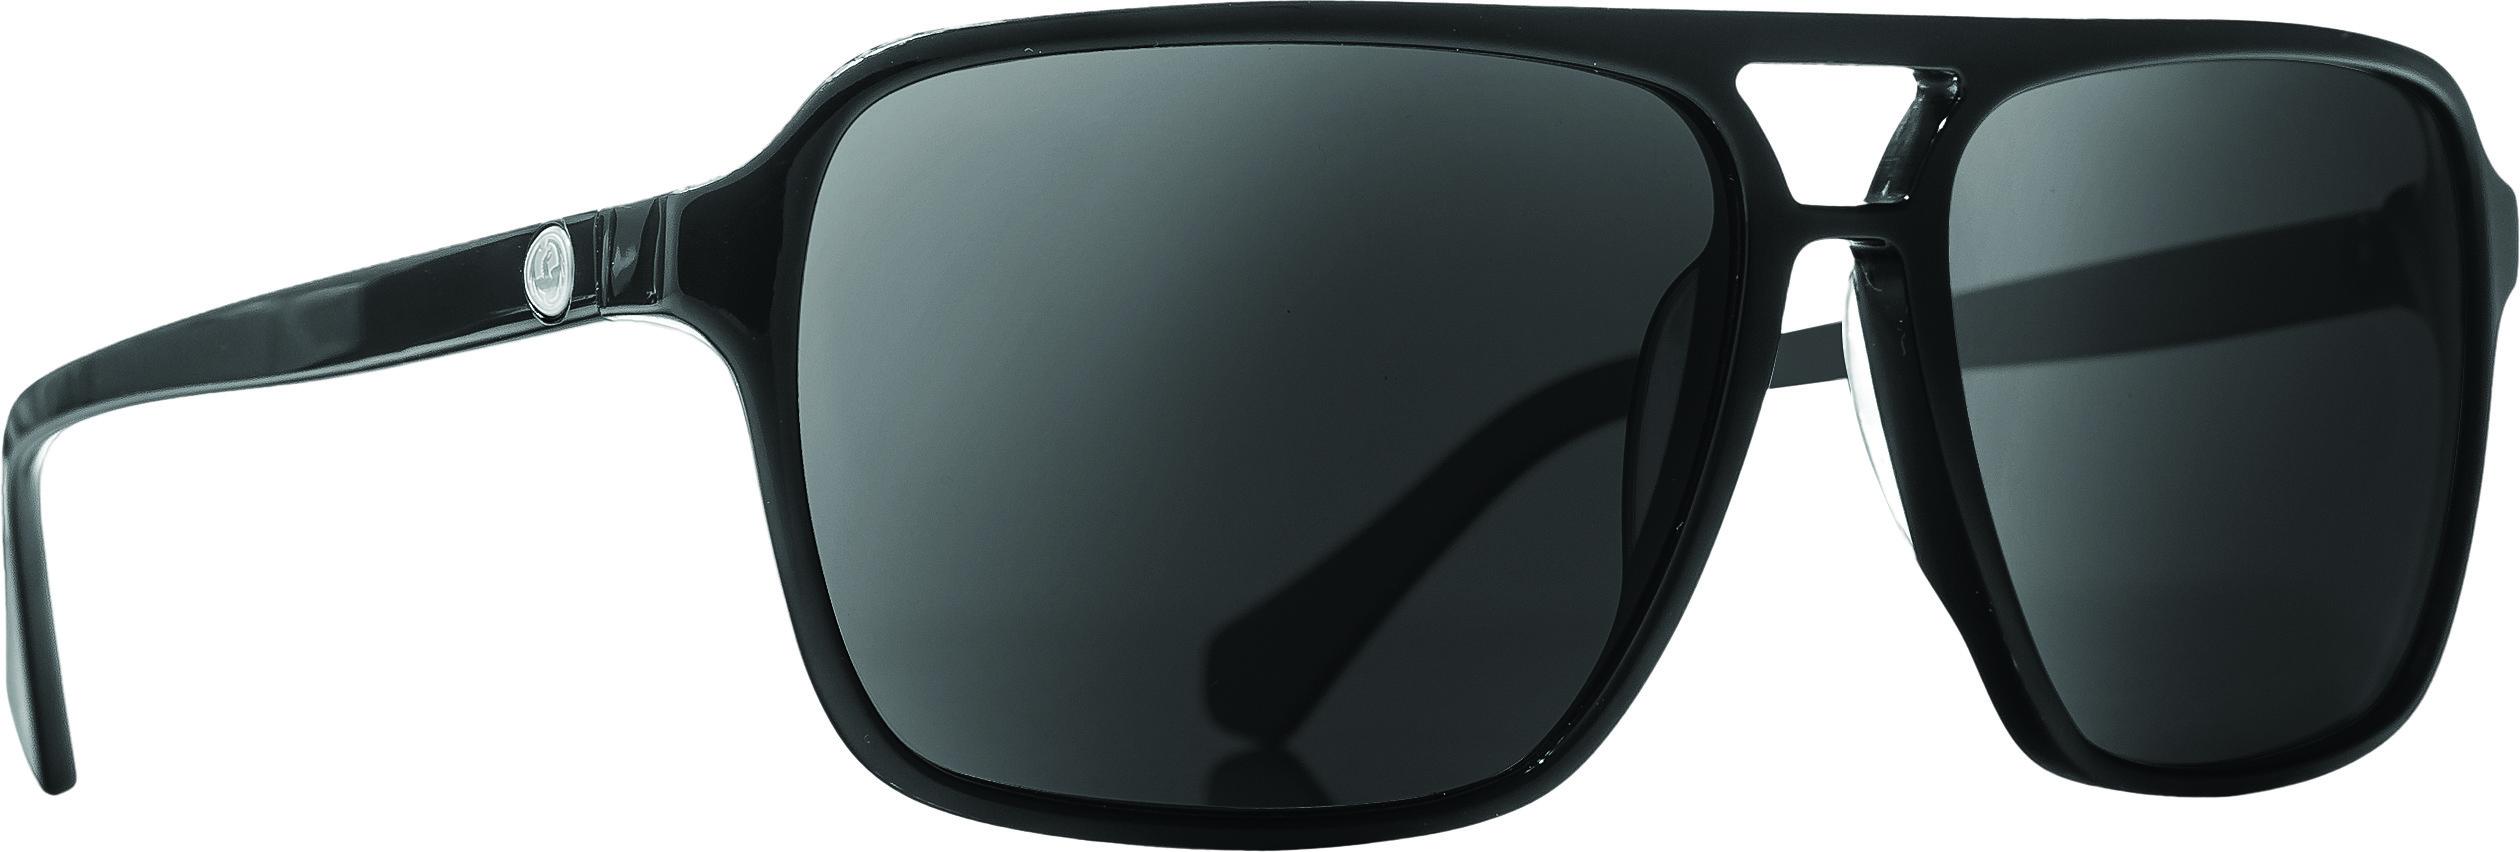 Passport Sunglasses Jet Black W/Grey Lens